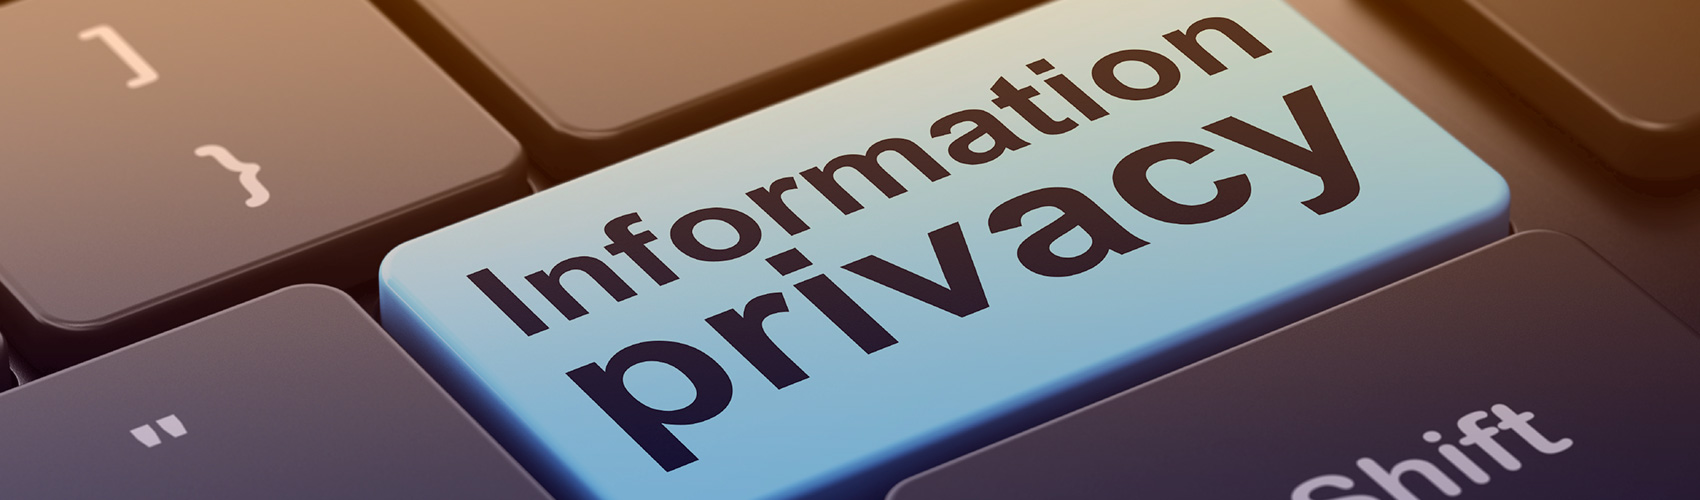 View our Affordable Web Design Ltd privacy policy - we do not sell or share your information!